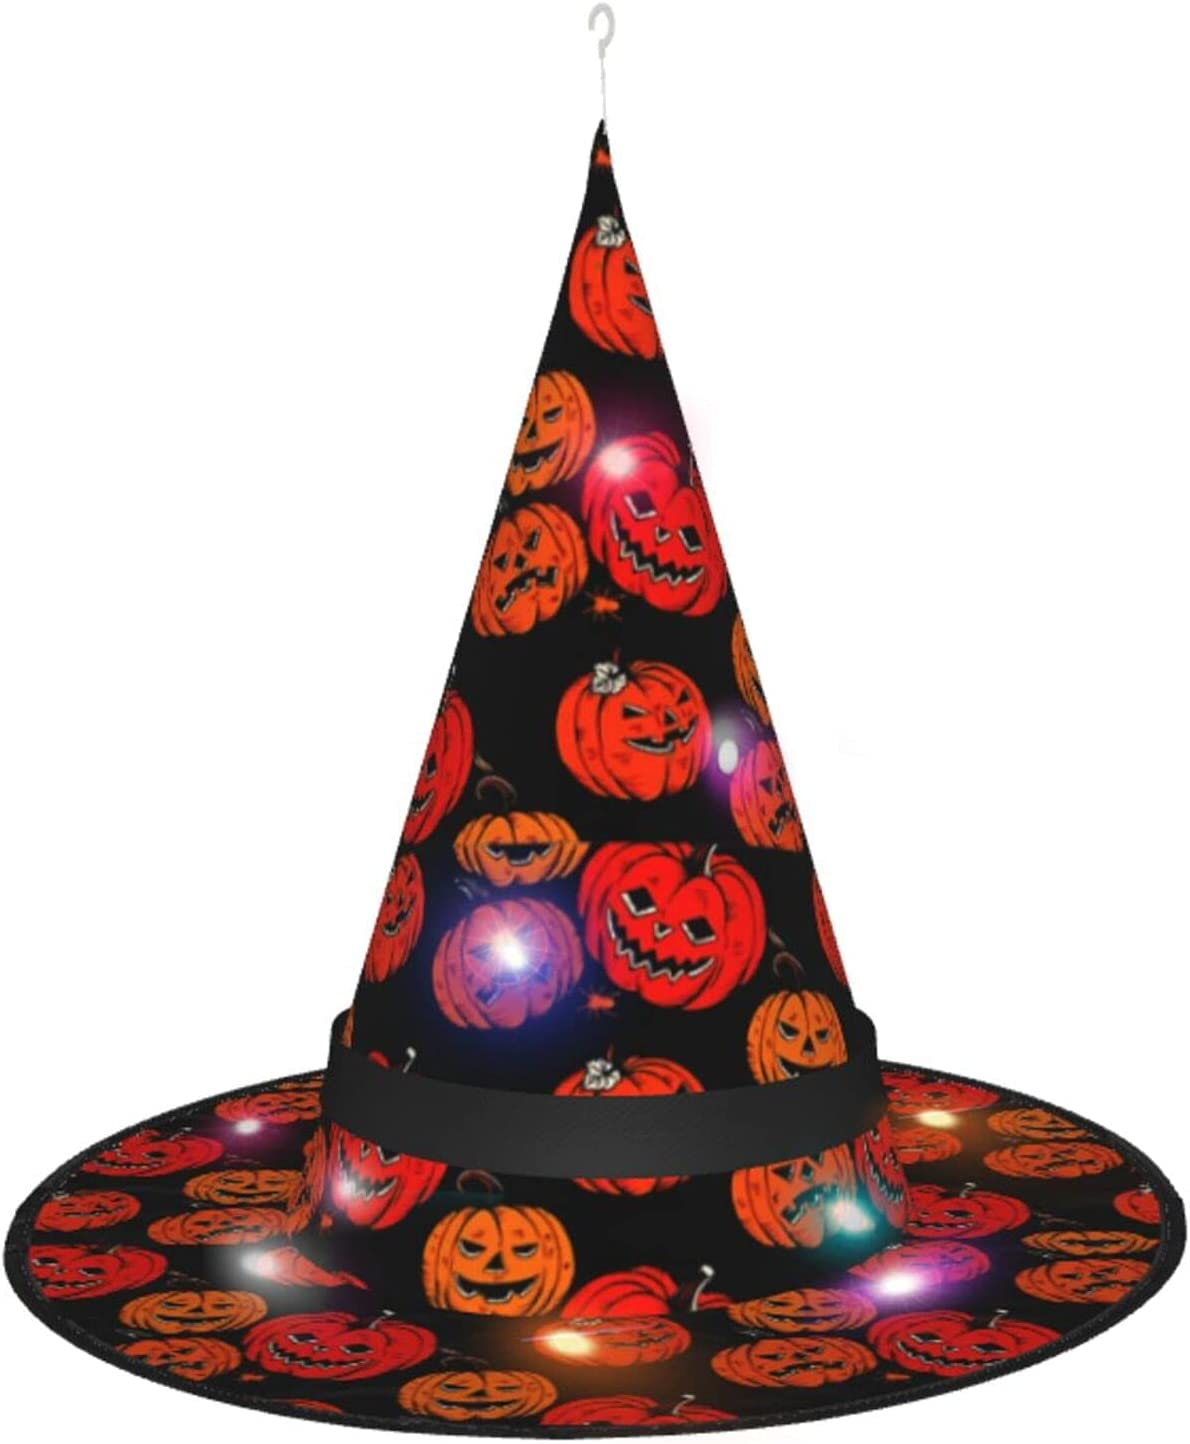 Halloween Witch Max 77% OFF Hat Max 76% OFF Pumpkin Costume Accessory Hallowee